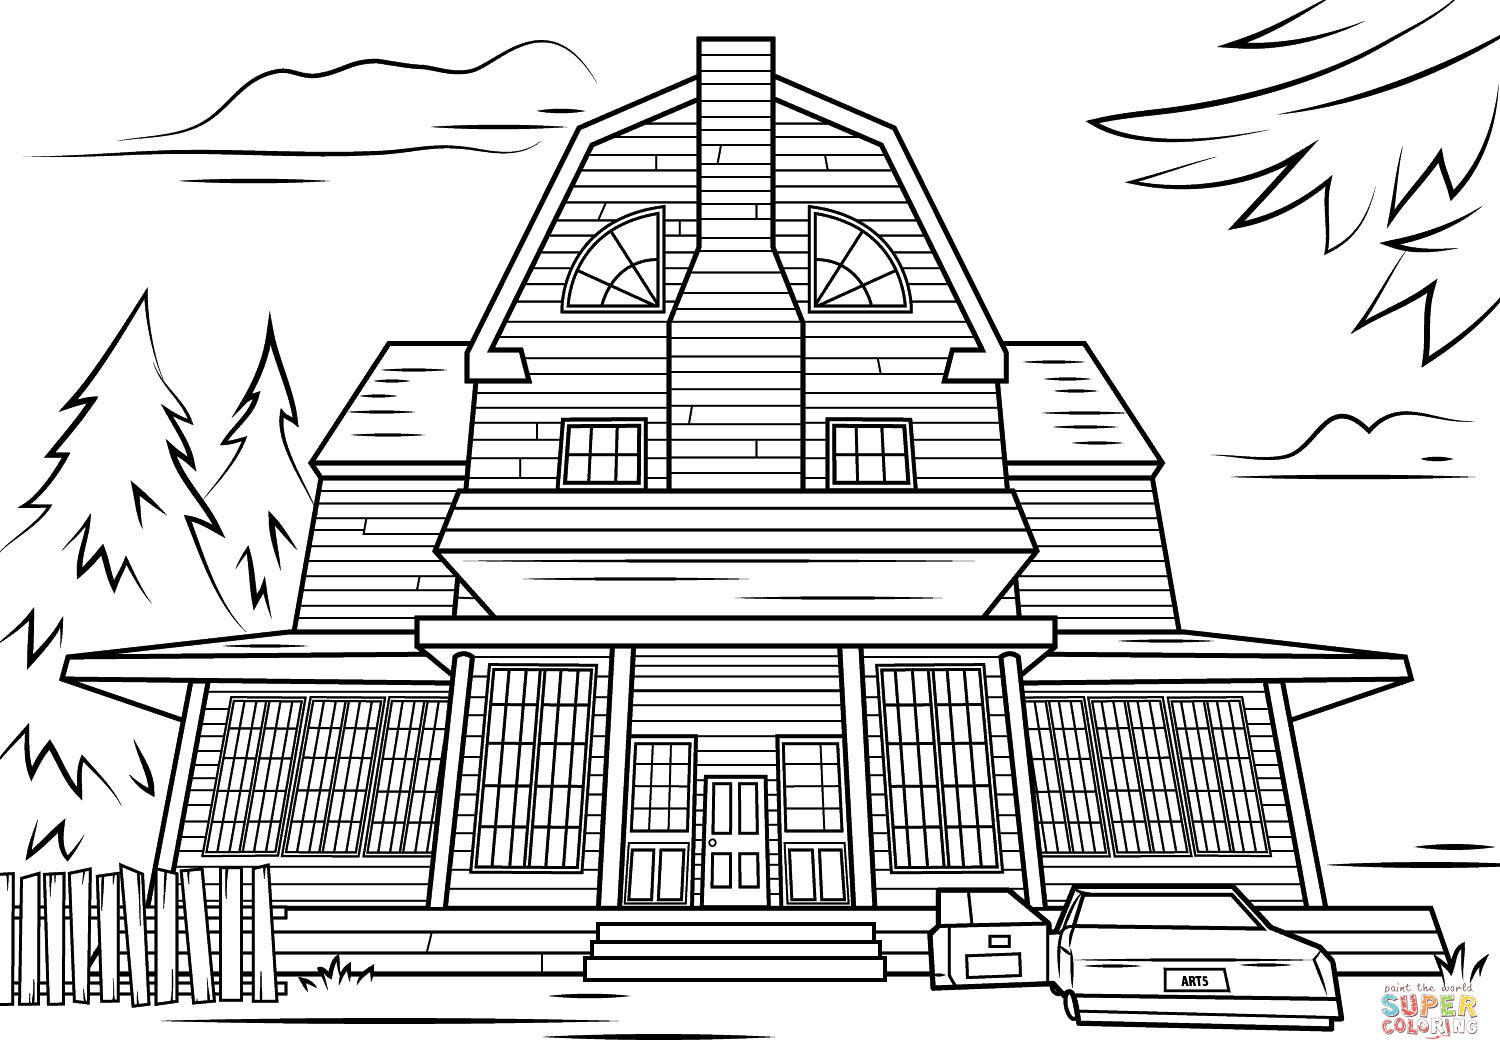 haunted house coloring pages printables haunted house coloring page free printable coloring pages pages house coloring printables haunted